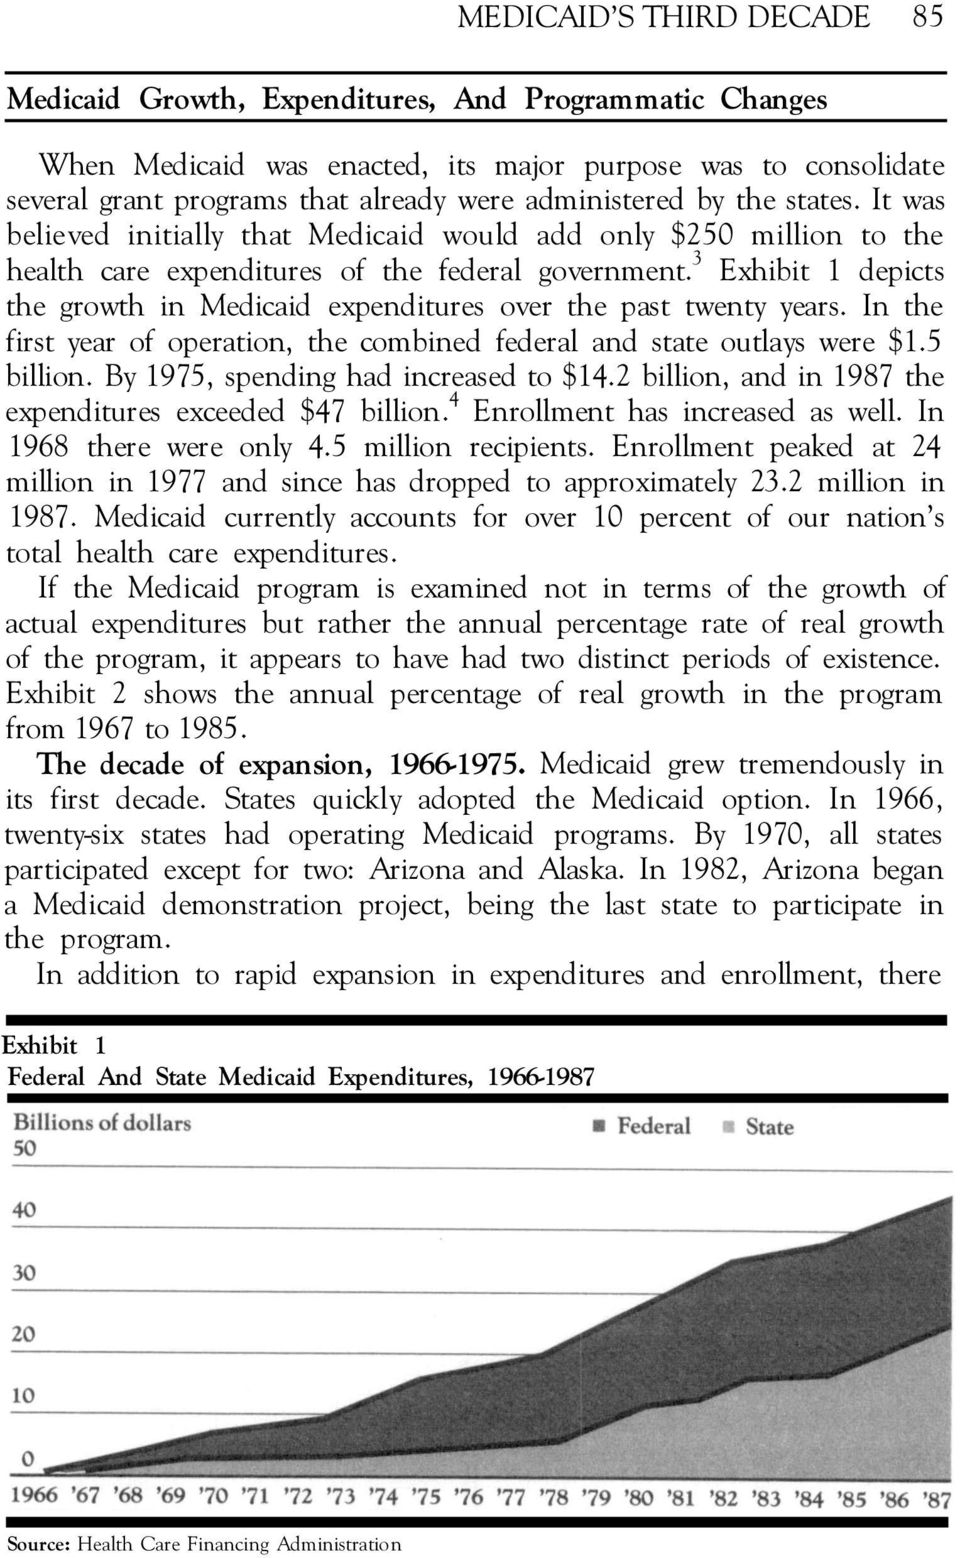 3 Exhibit 1 depicts the growth in Medicaid expenditures over the past twenty years. In the first year of operation, the combined federal and state outlays were $1.5 billion.